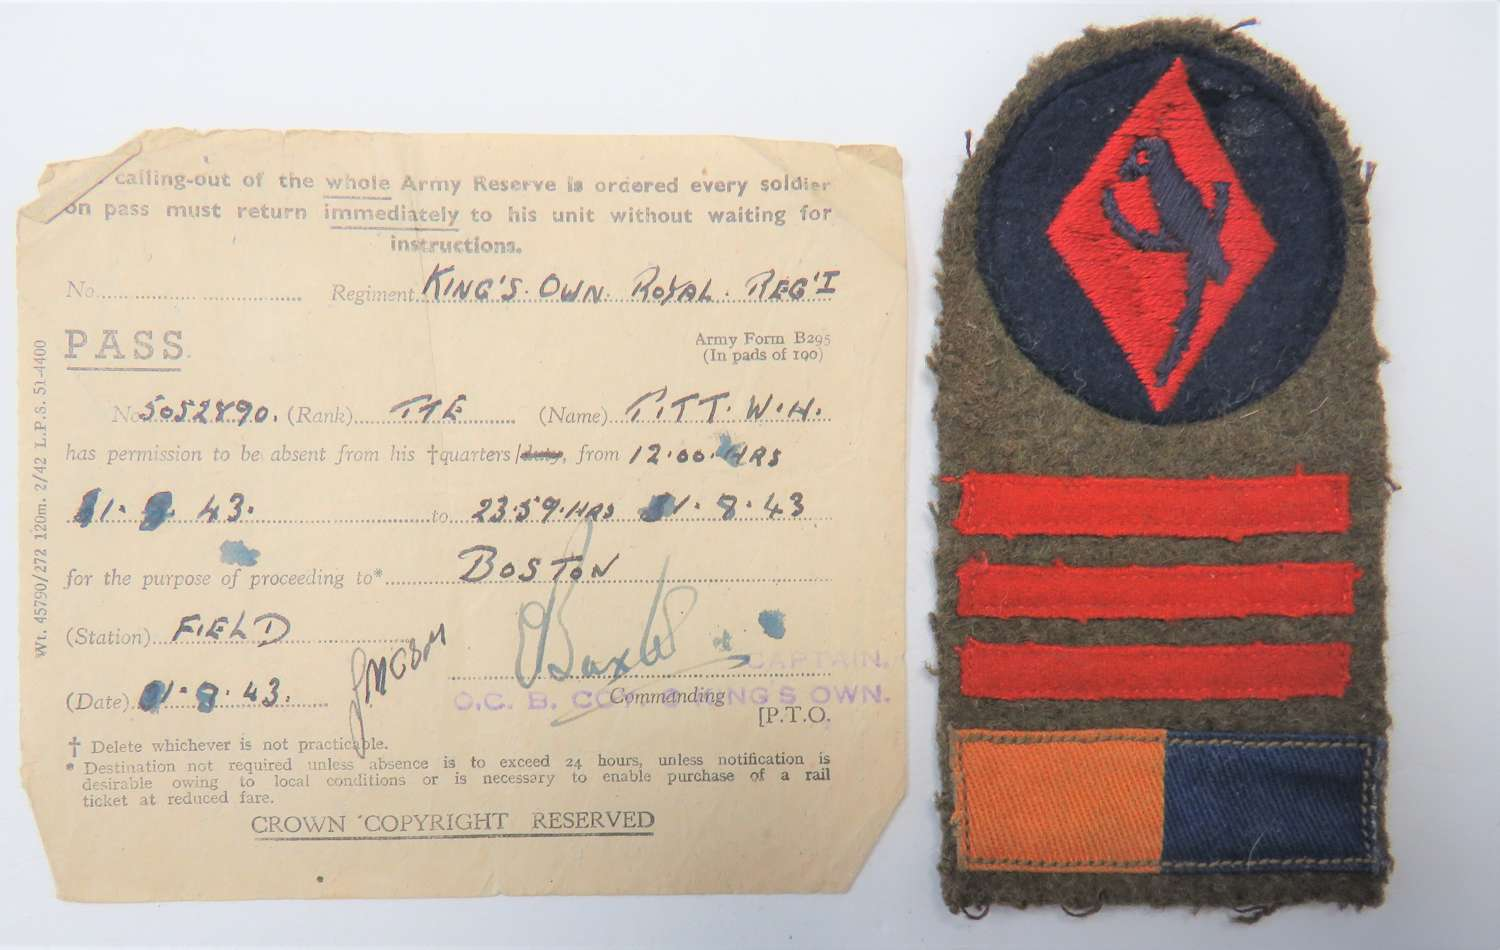 48th Division Kings Own Regiment Battle Formation Flash